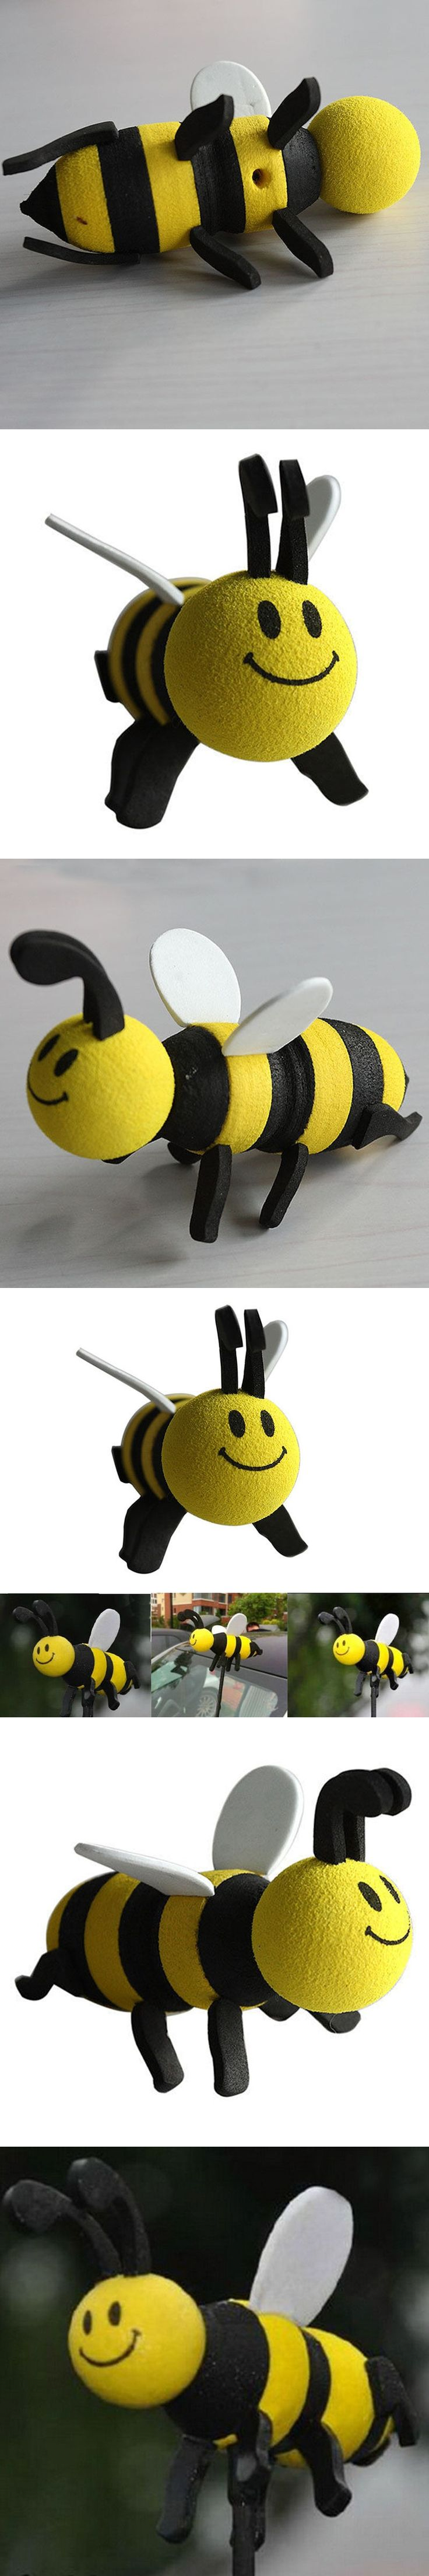 MAYITR Cute Smiley Honey Yellow Bumble Bee Antenna Pen Topper Car Aerial Ball Decoration Car Styling Ornaments